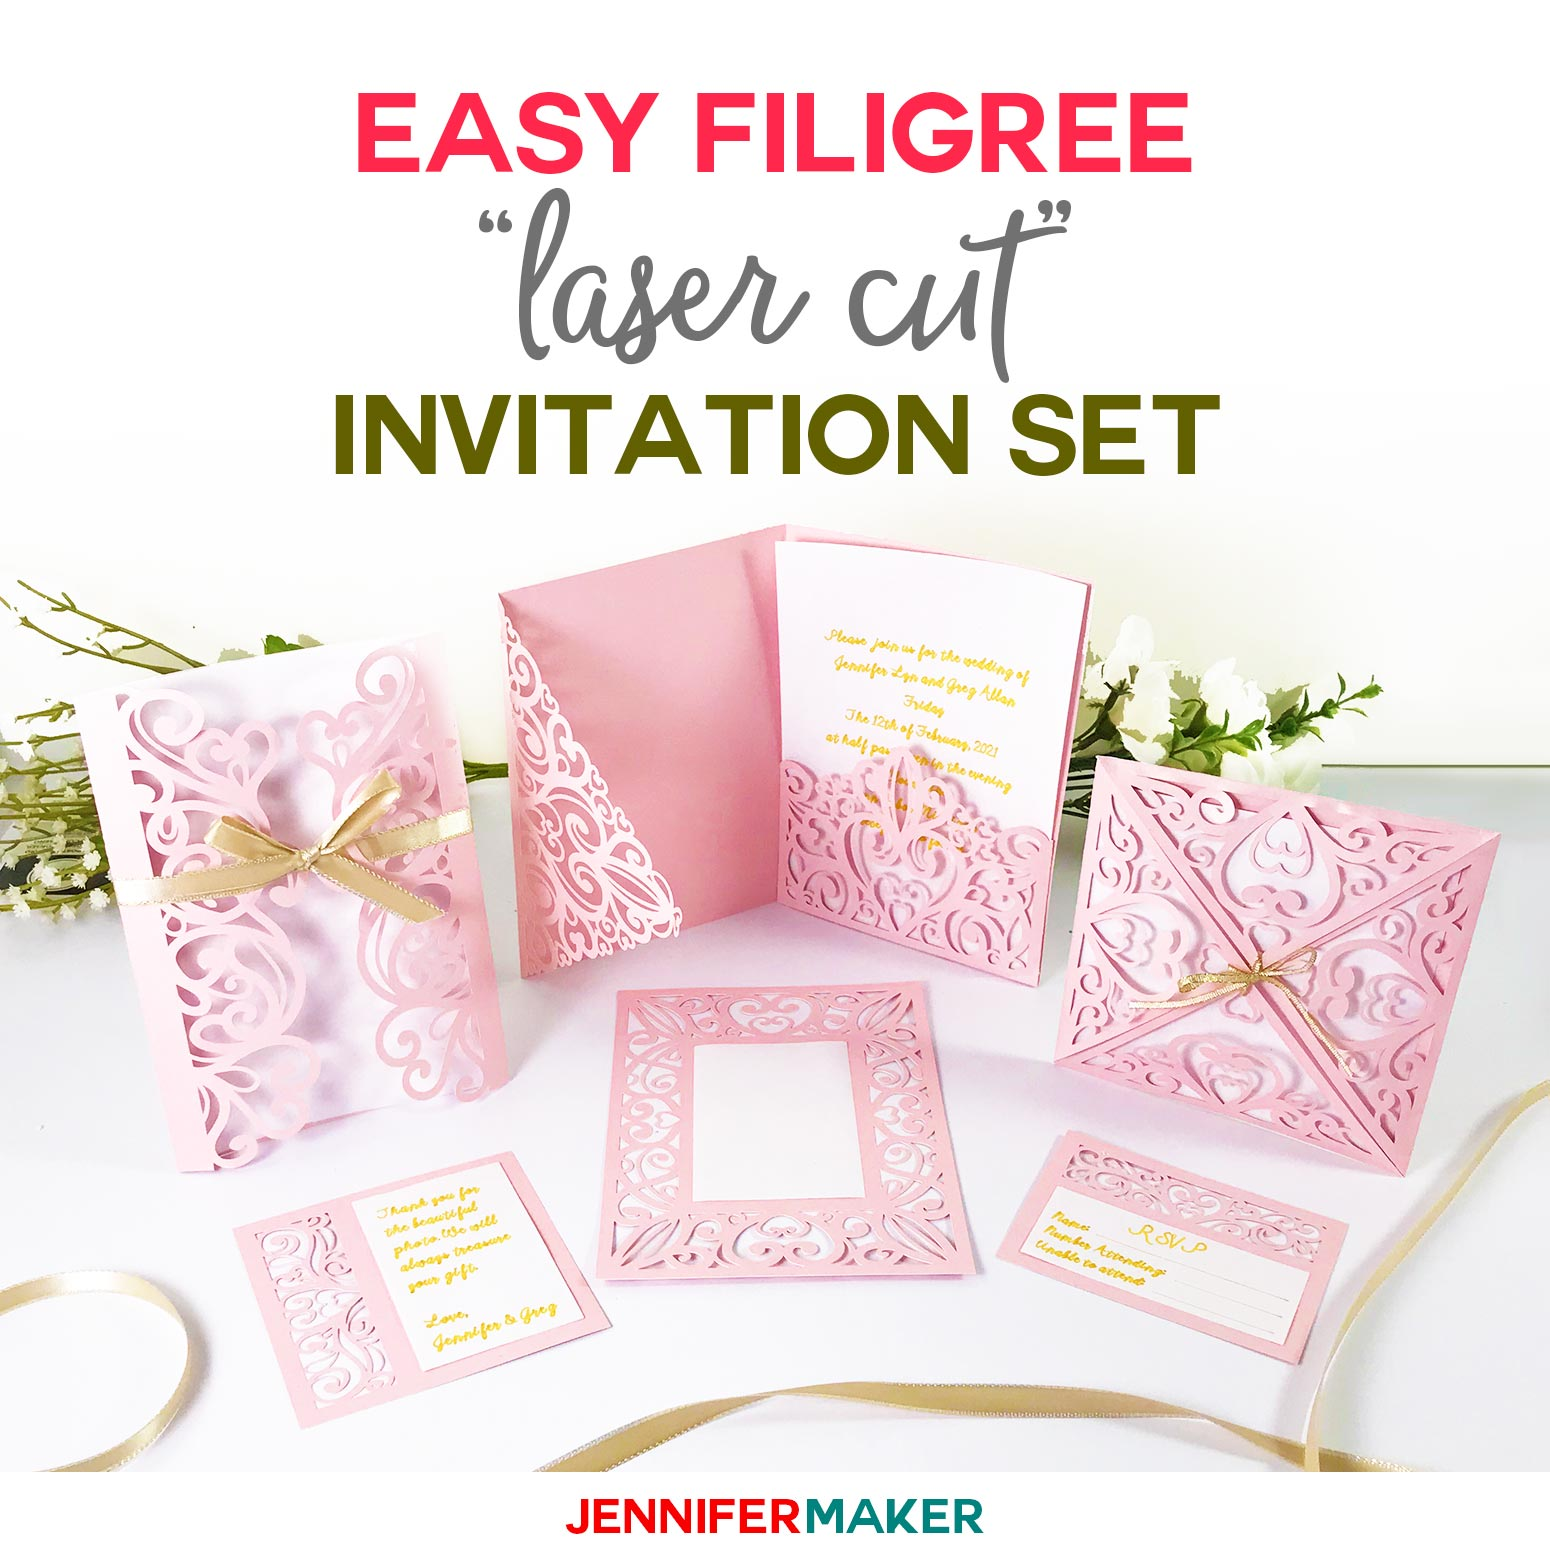 Wedding Invitation Template.Diy Wedding Invitation Templates Free Laser Cut Set Jennifer Maker